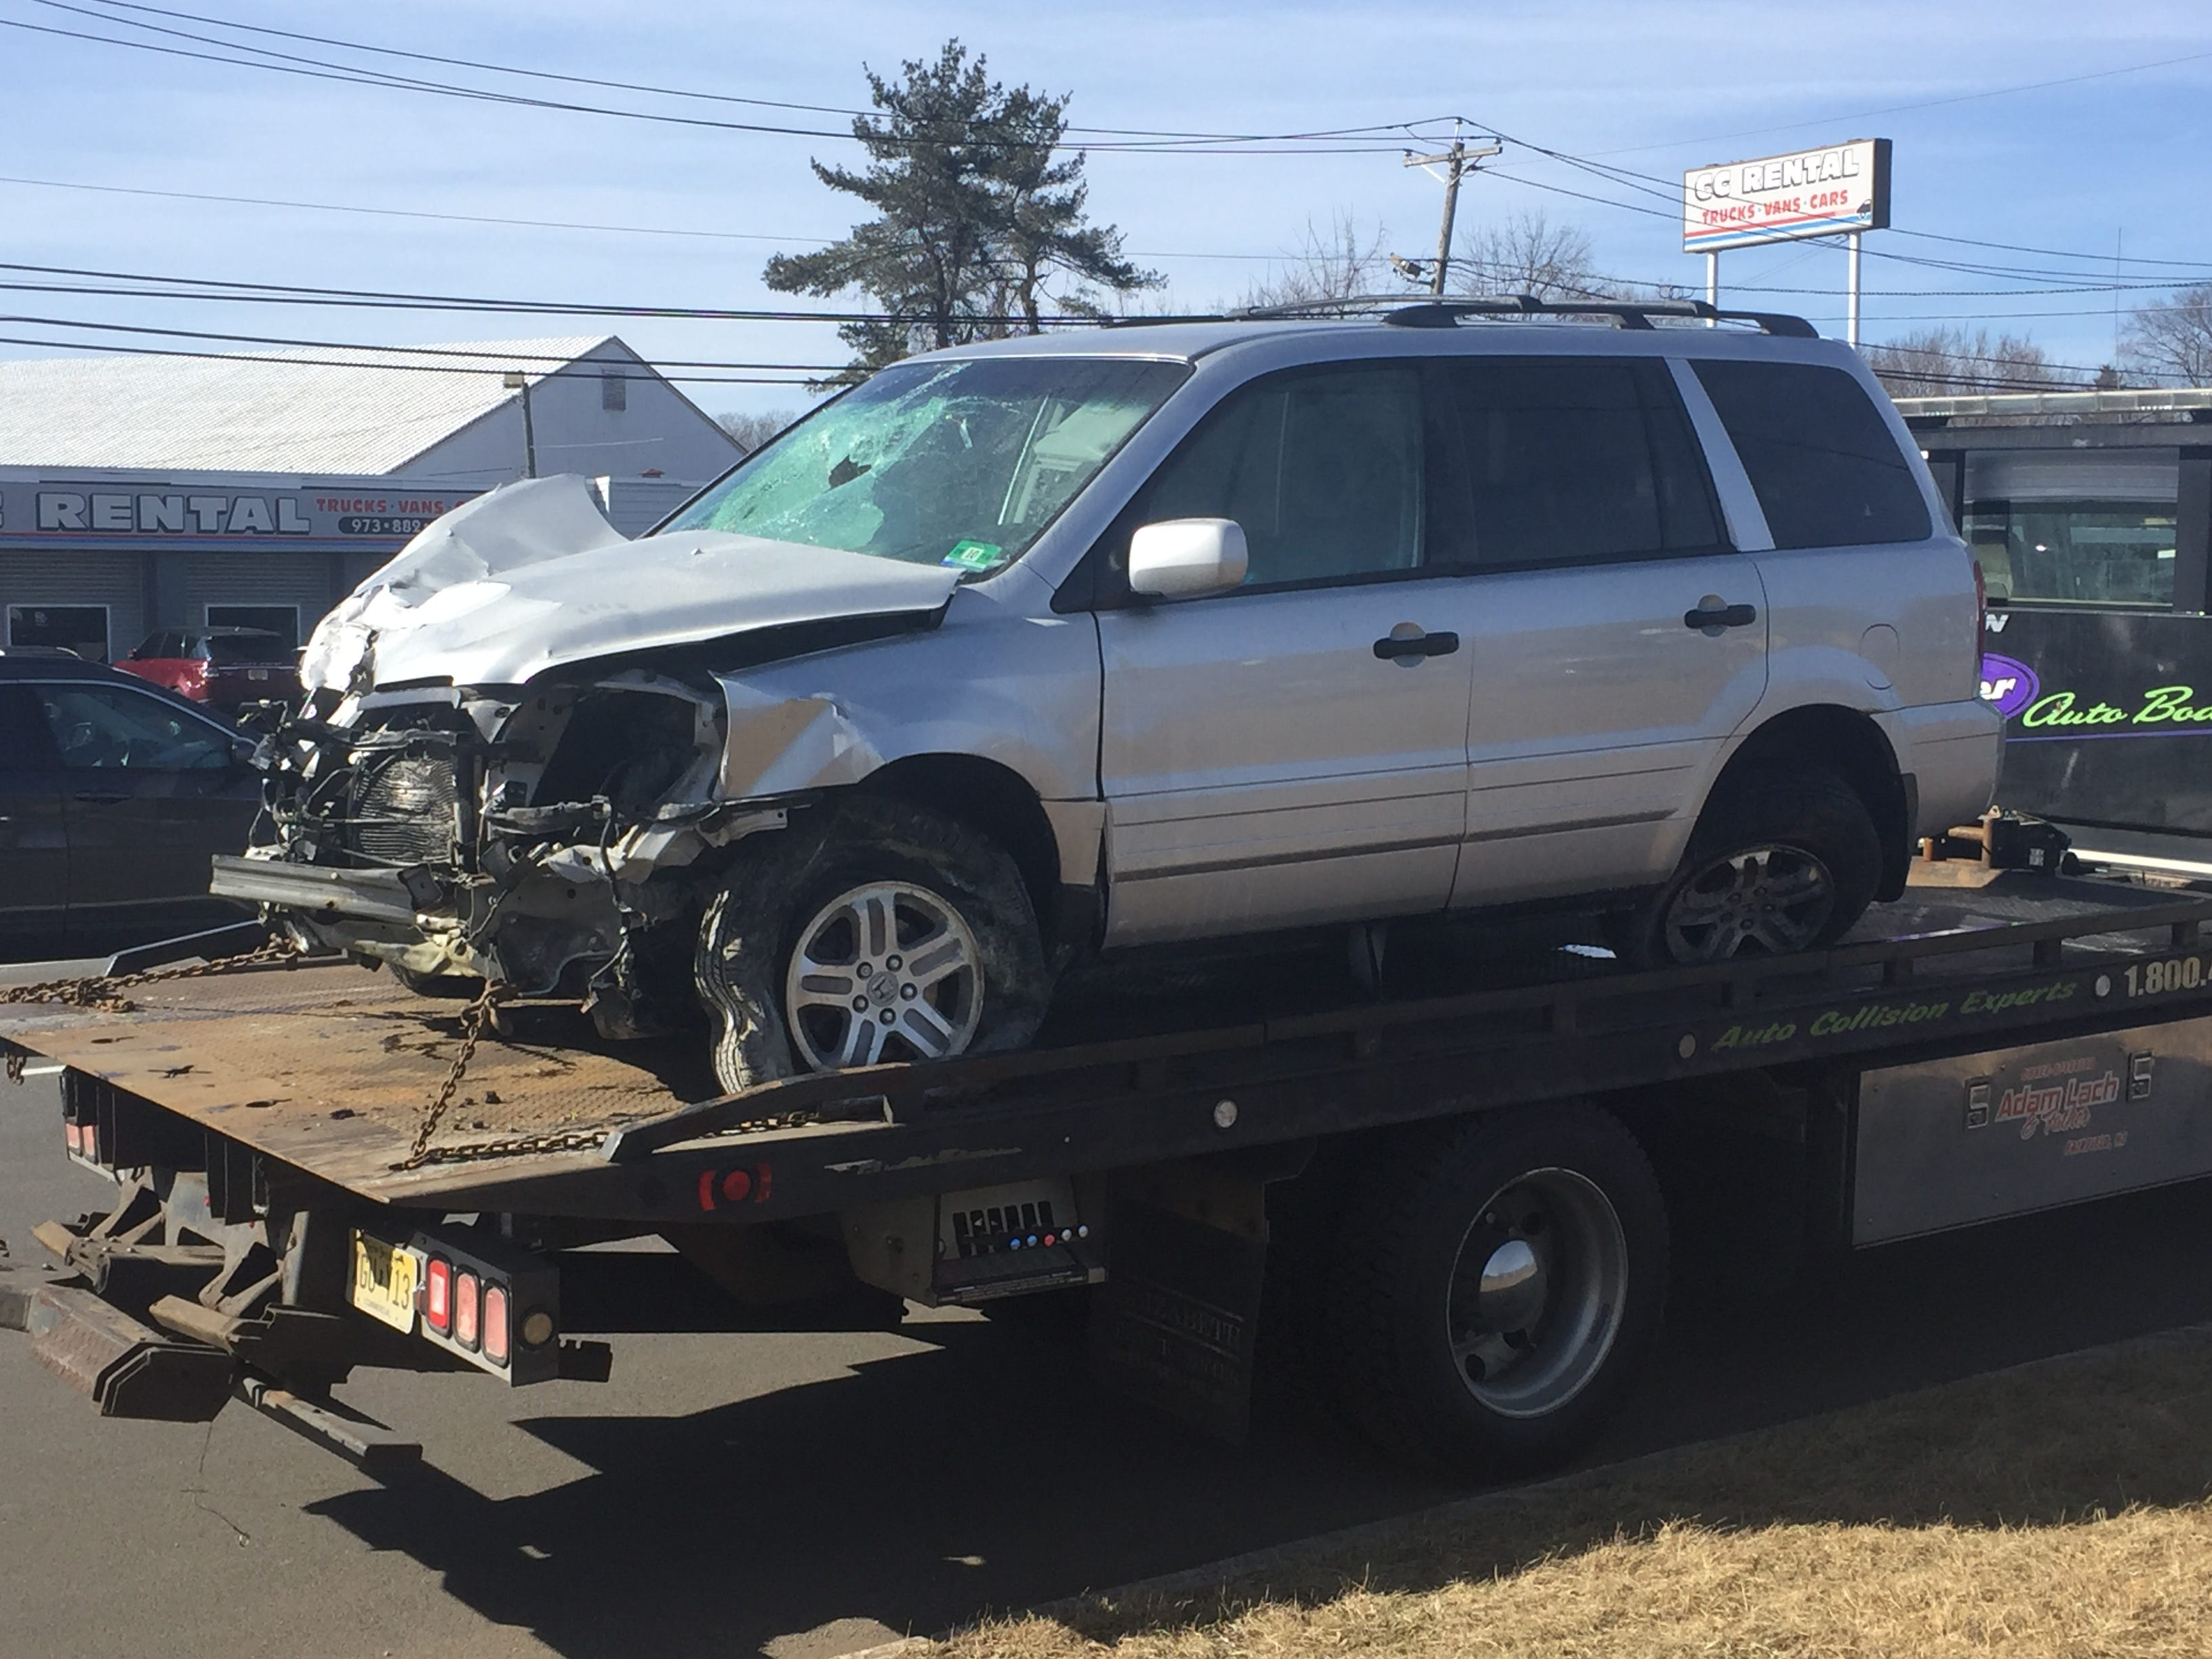 Police towed the car of the driver suspected of killed three people in a crash in Wayne.